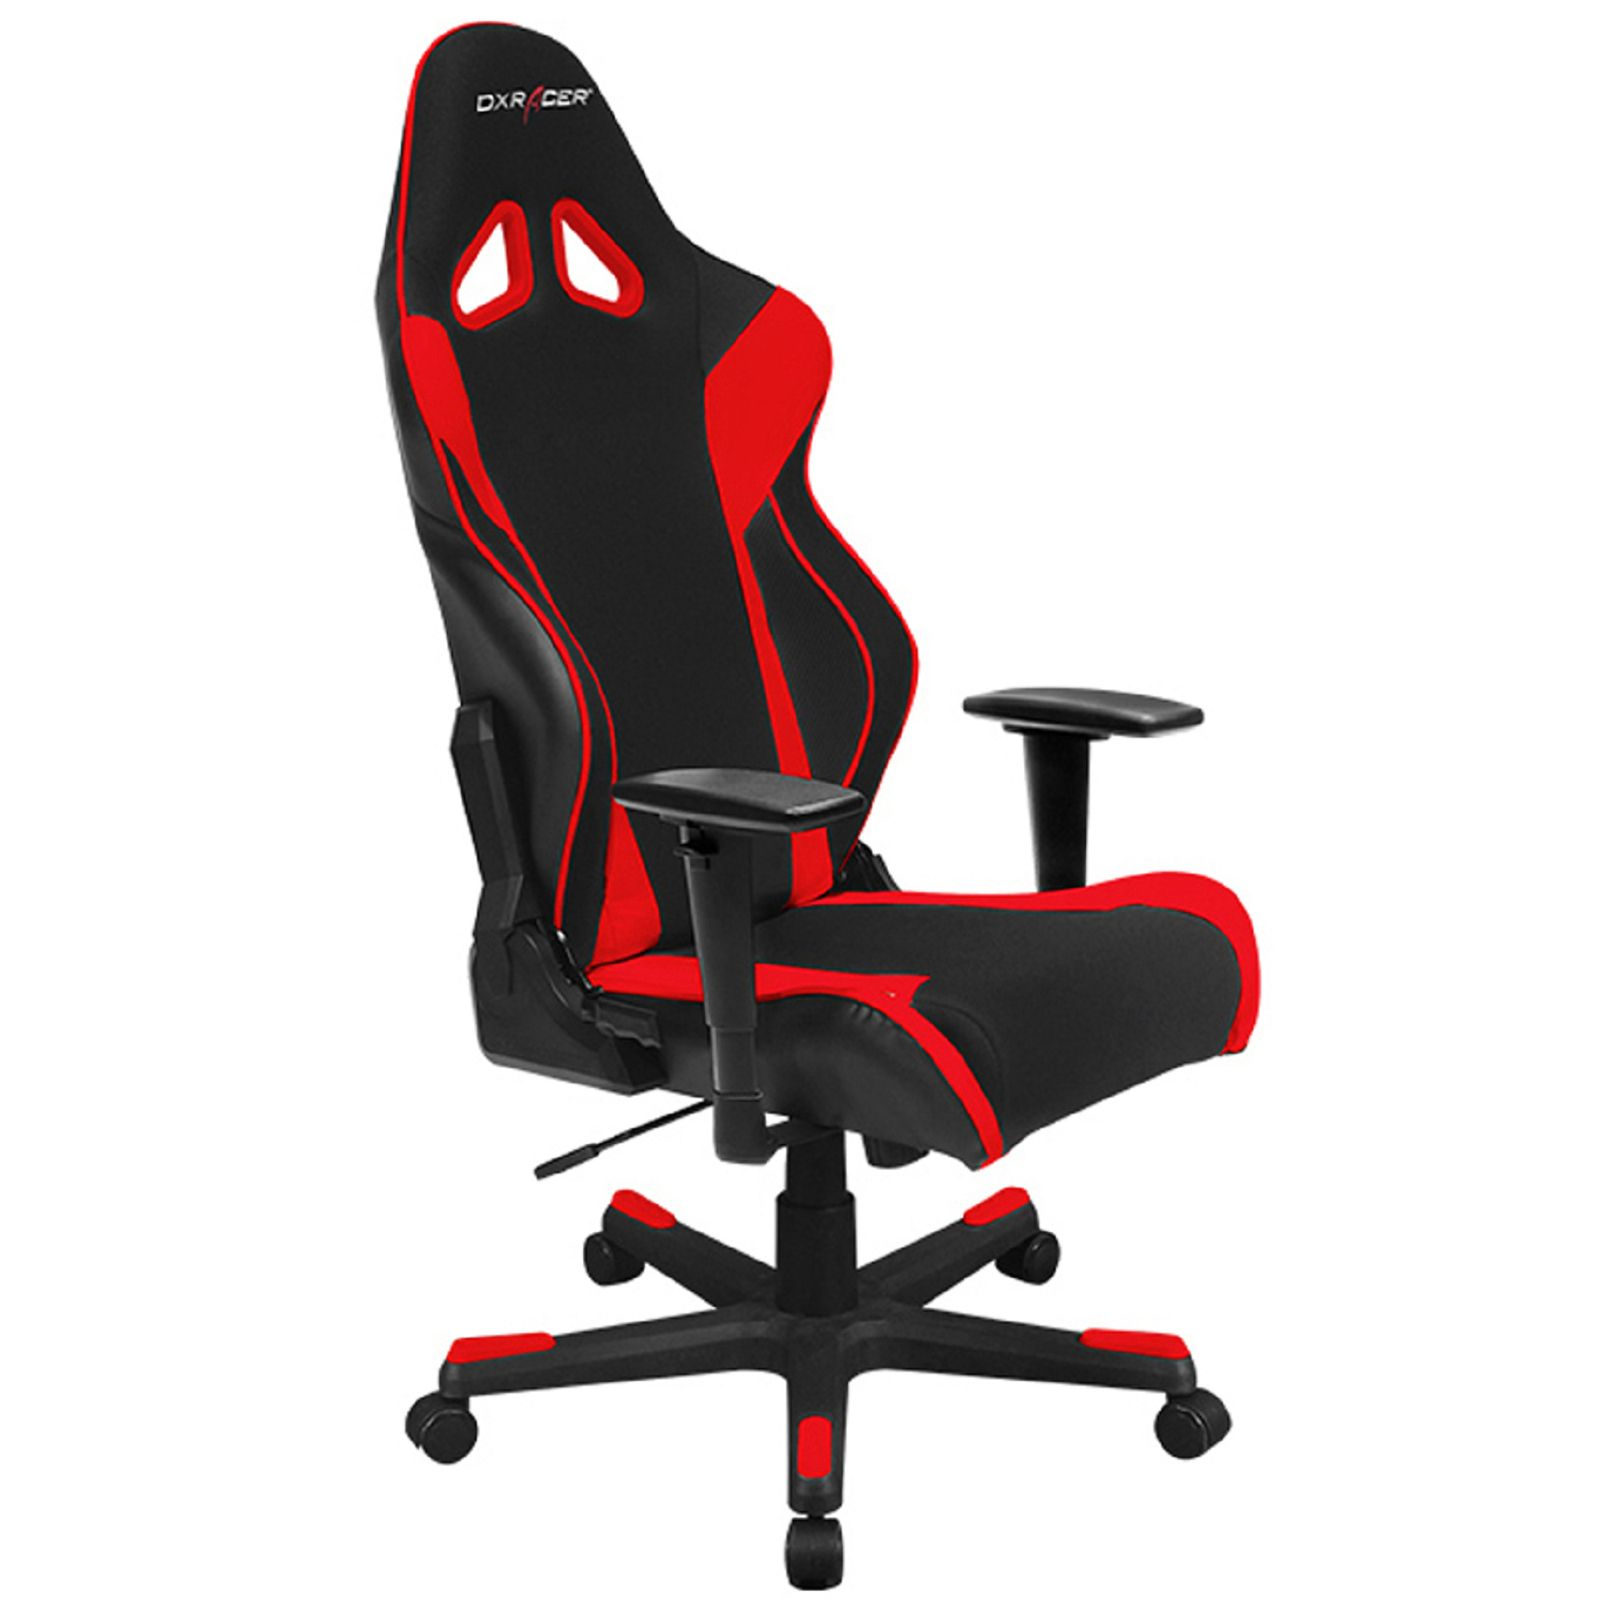 DXRACER RW106NR computer chair office chair sports chair ...